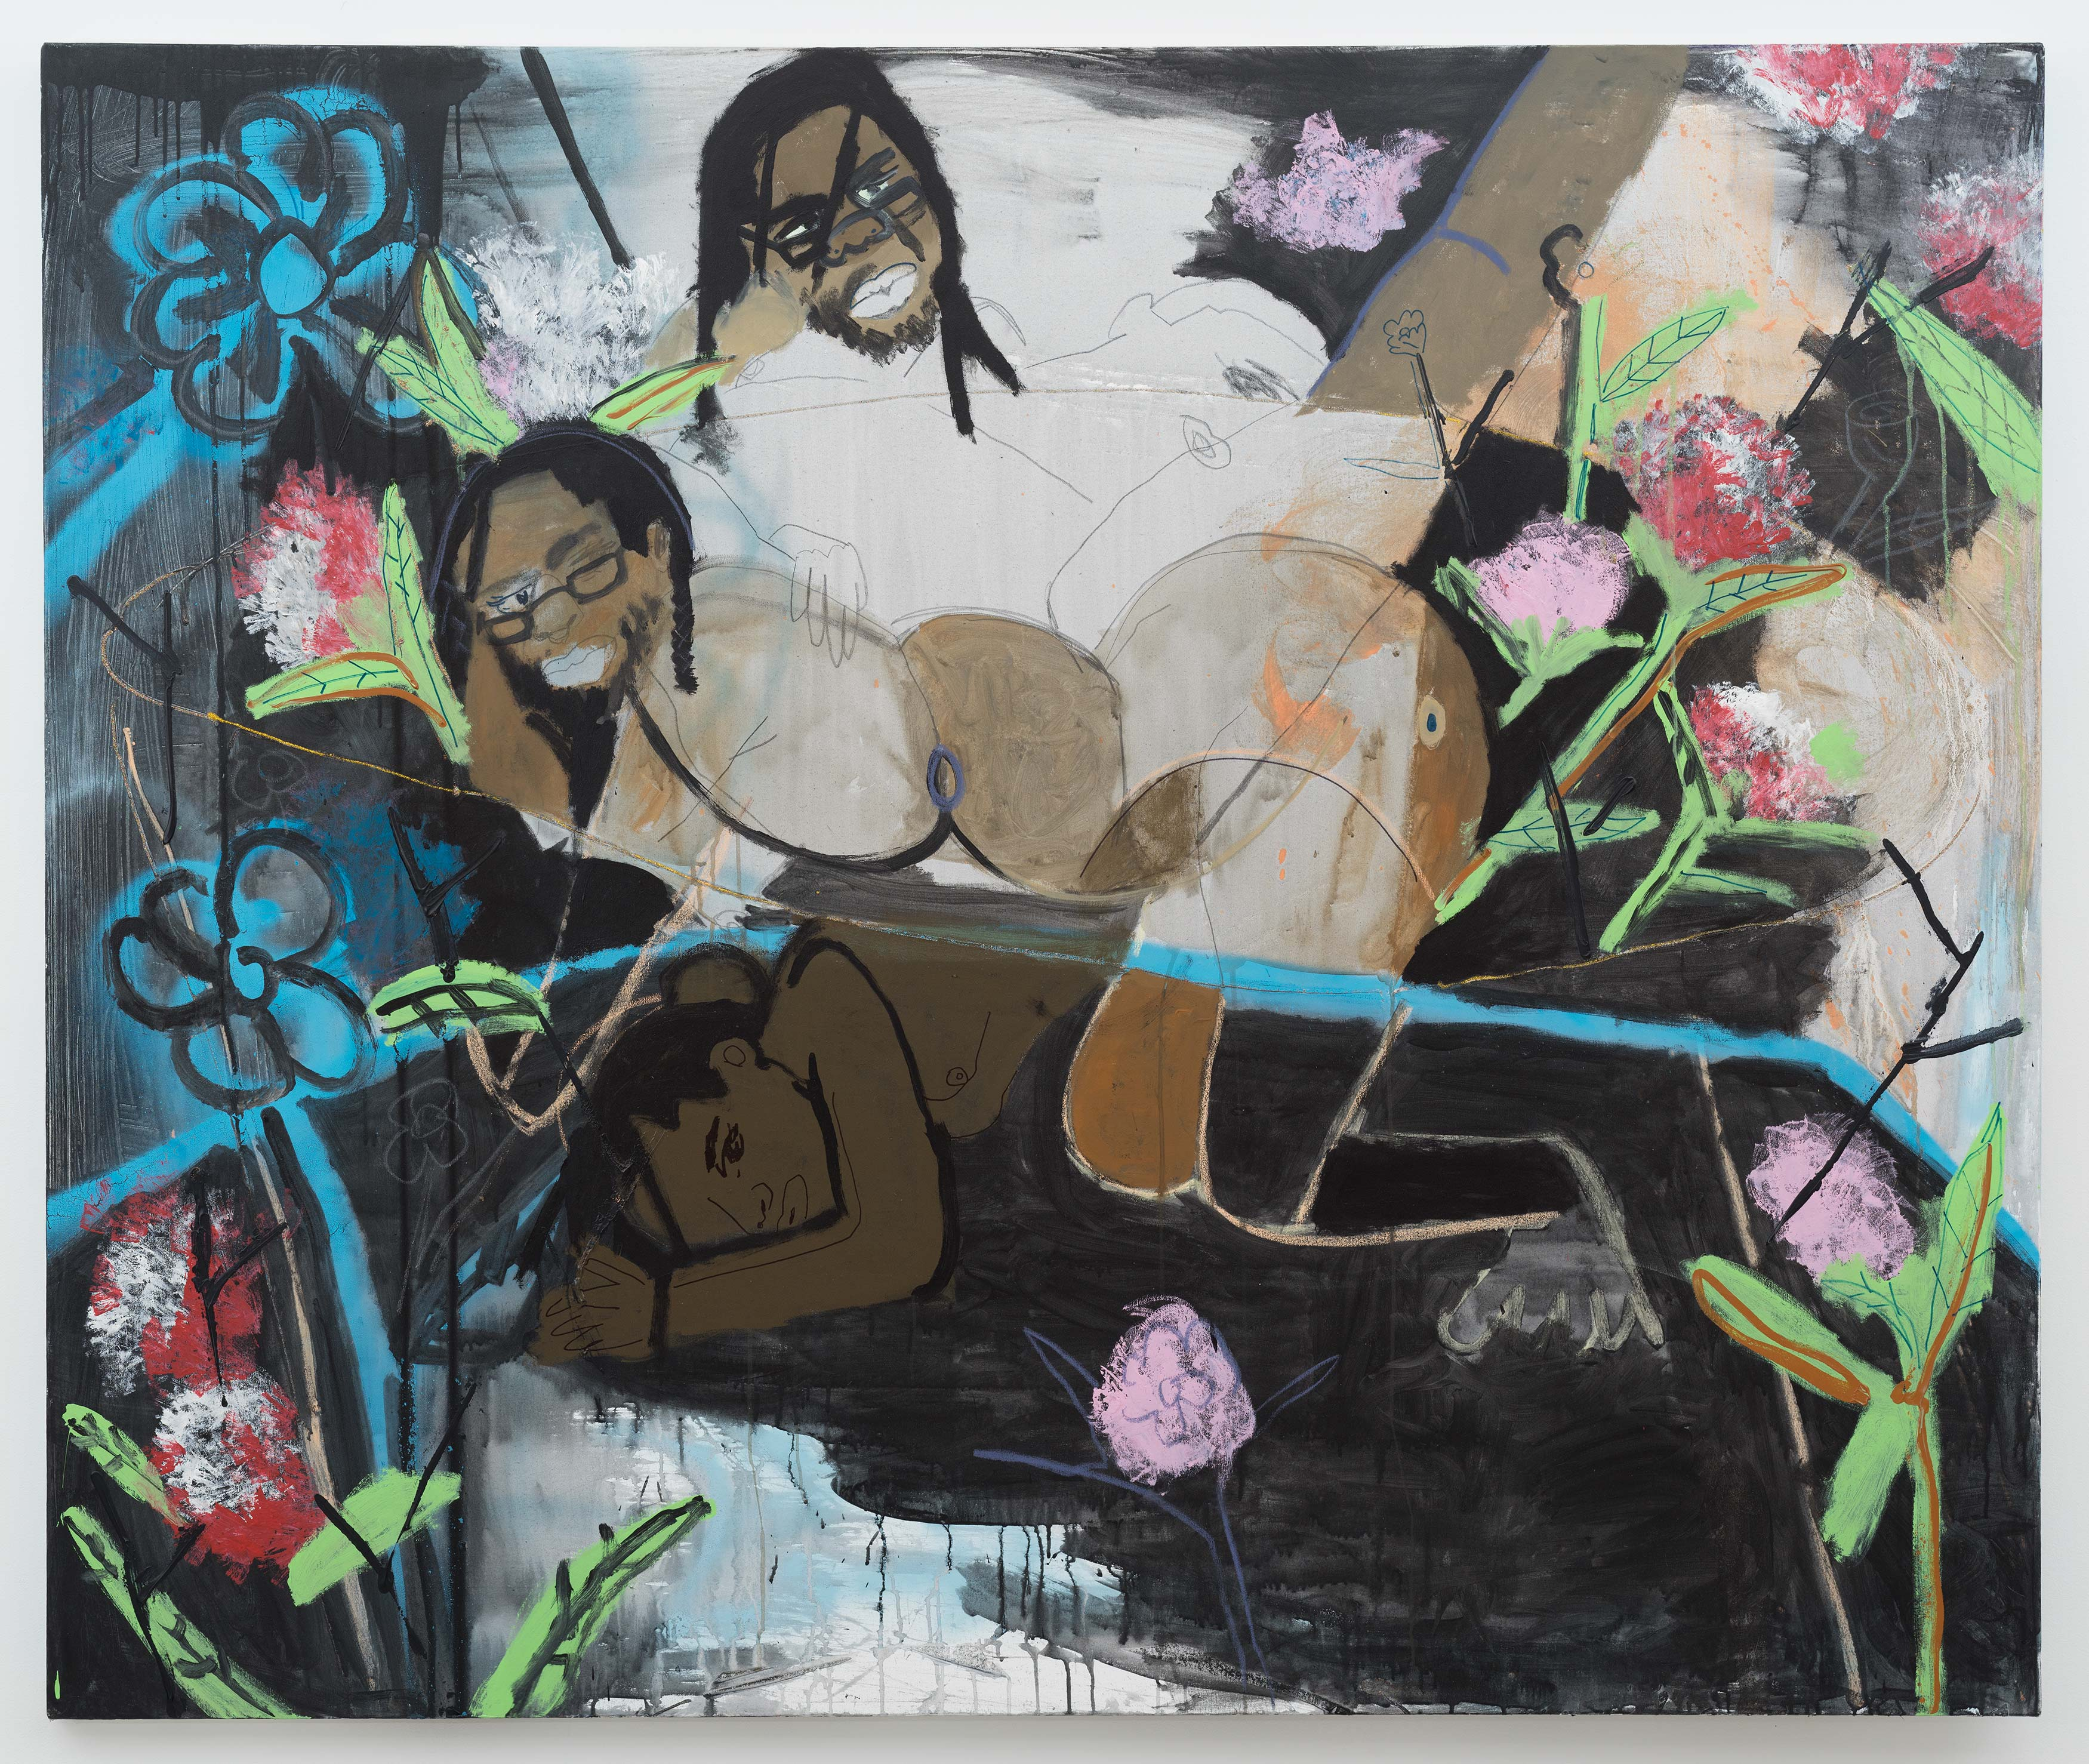 Jonathan Lyndon Chase<br>Darryl<br>2016<br>Acrylic, Glitter, Spray paint, graphite on canvas<br>60 x 72 in